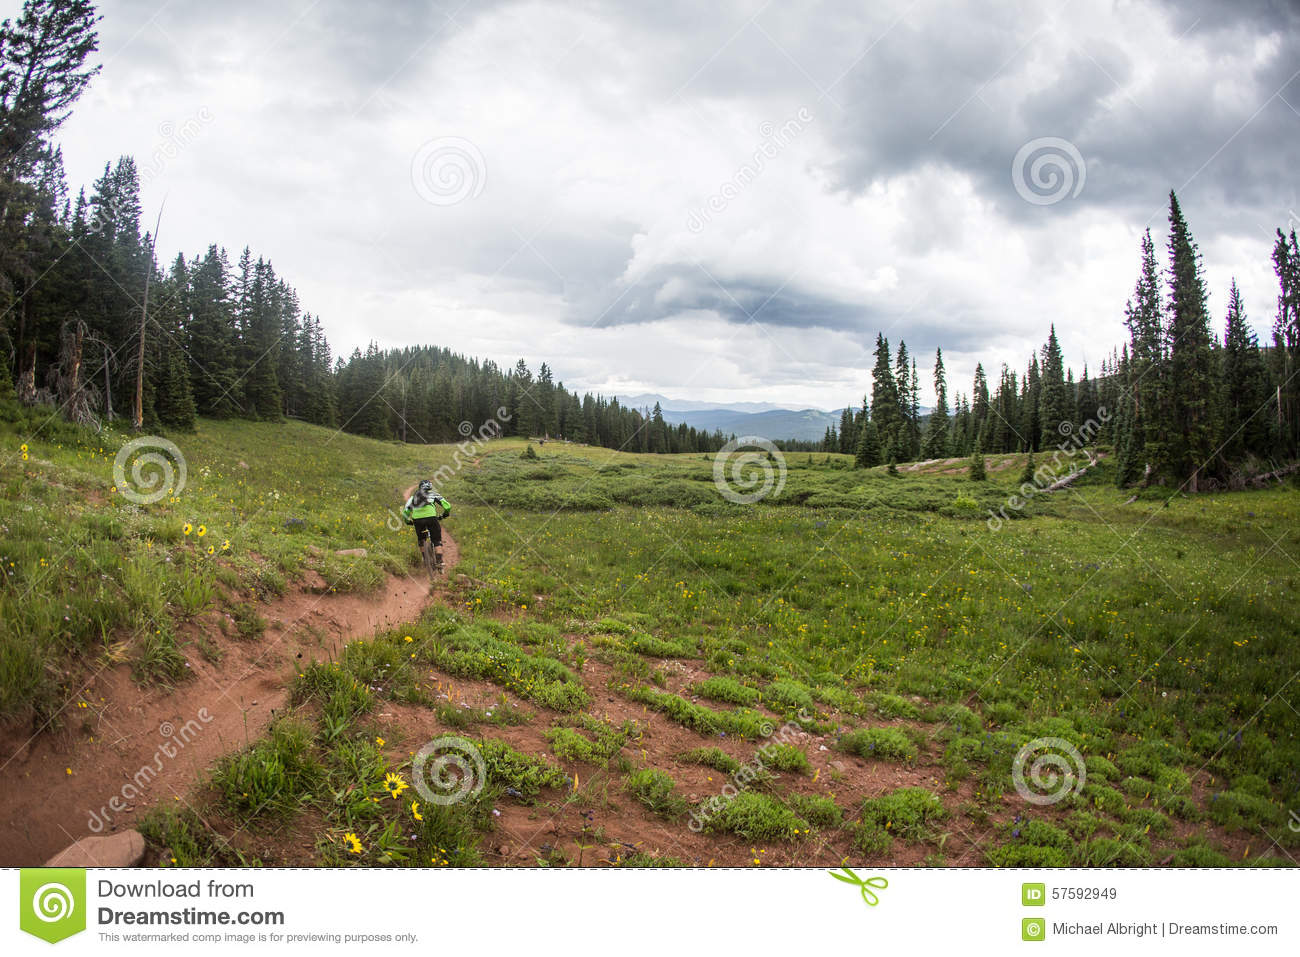 crested butte buddhist single men Meet single men in crested butte co online & chat in the forums dhu is a 100% free dating site to find single men in crested butte.